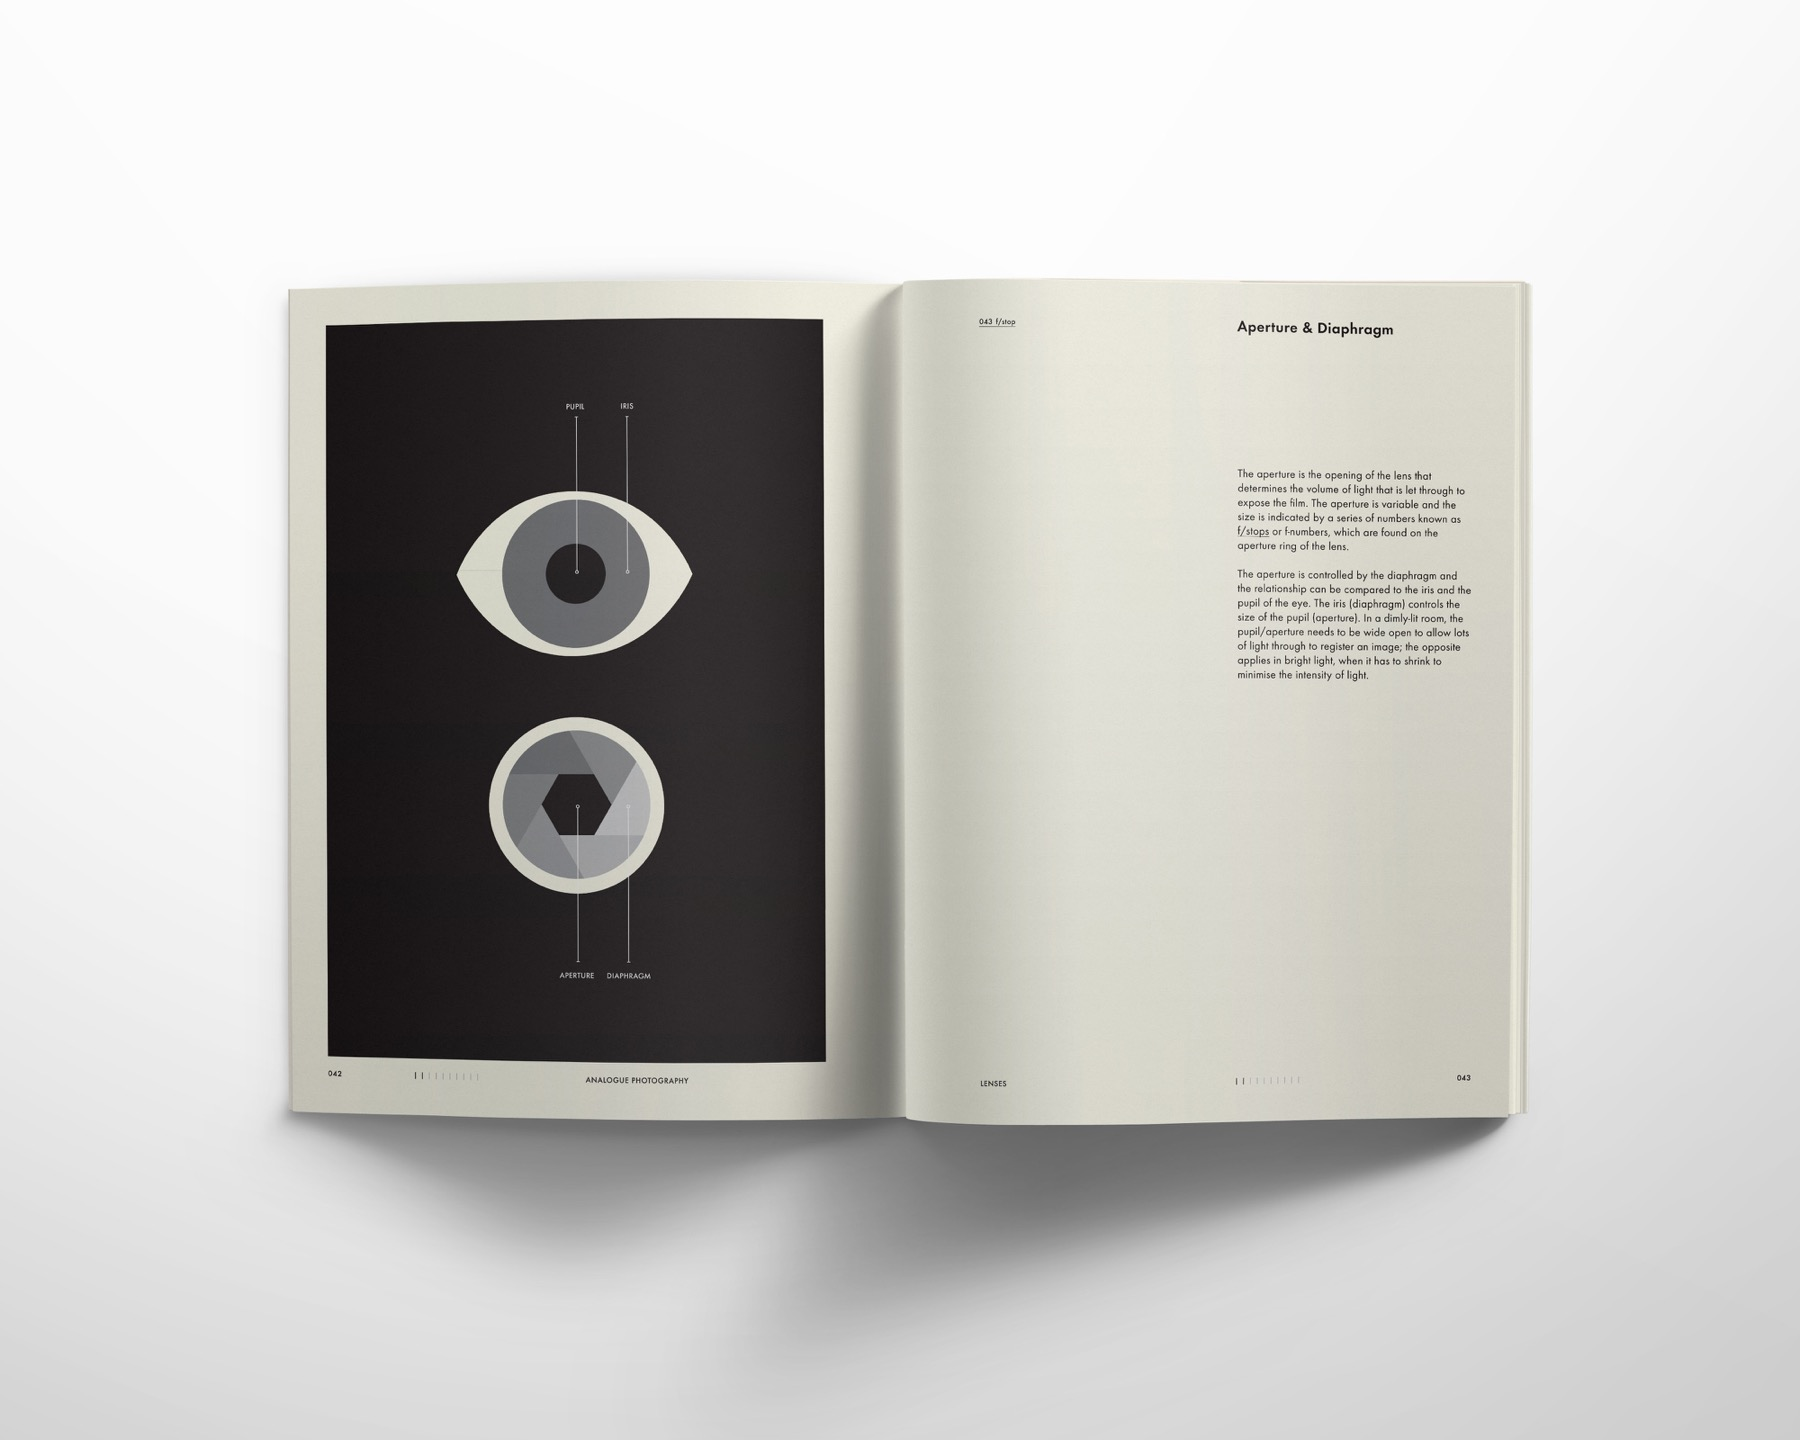 vetro editions analogue photography 6